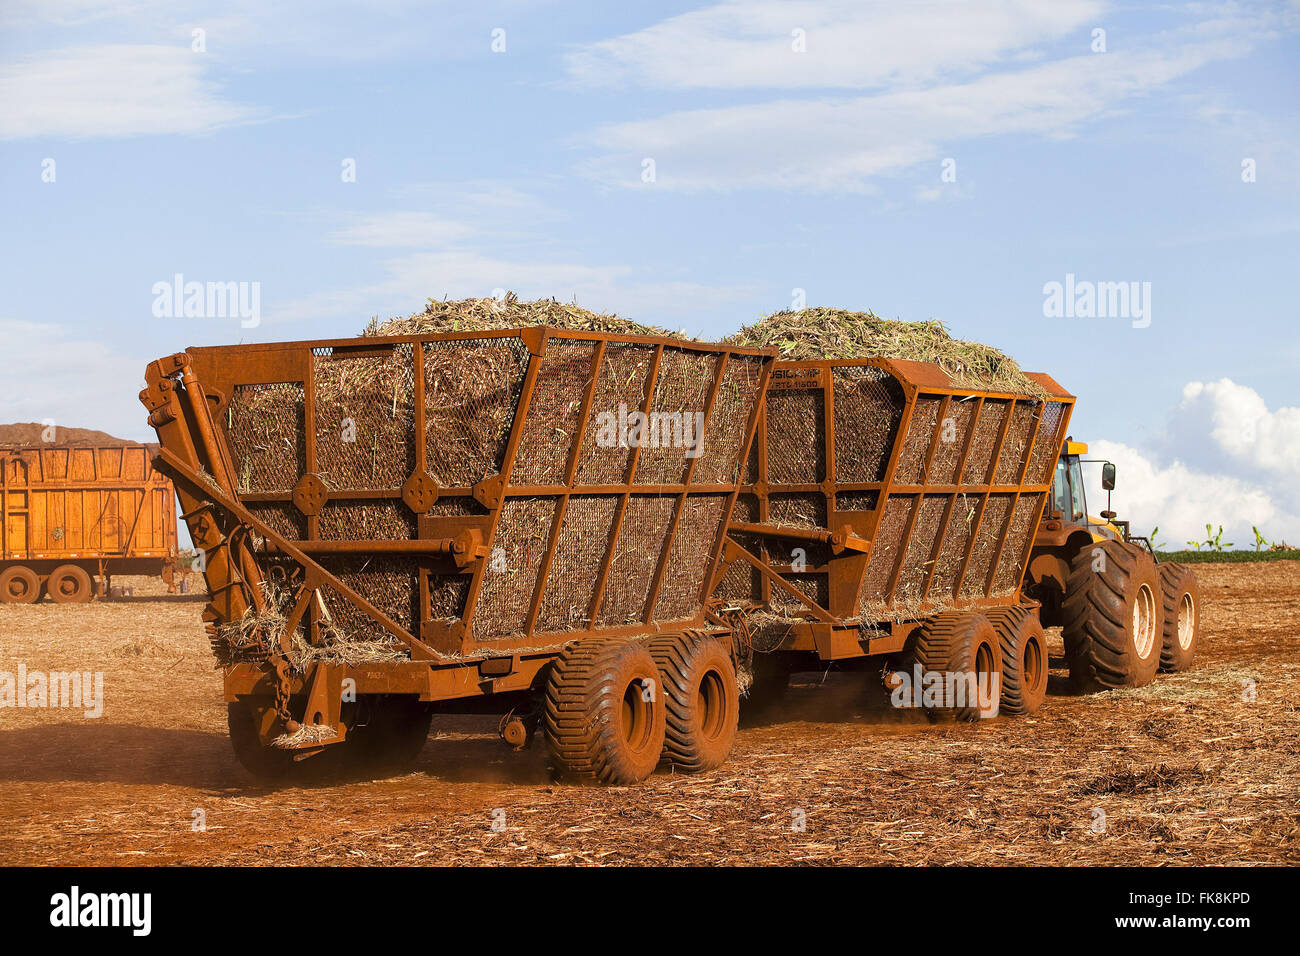 Tractor hauling sugar cane after mechanical harvest in the countryside - Stock Image